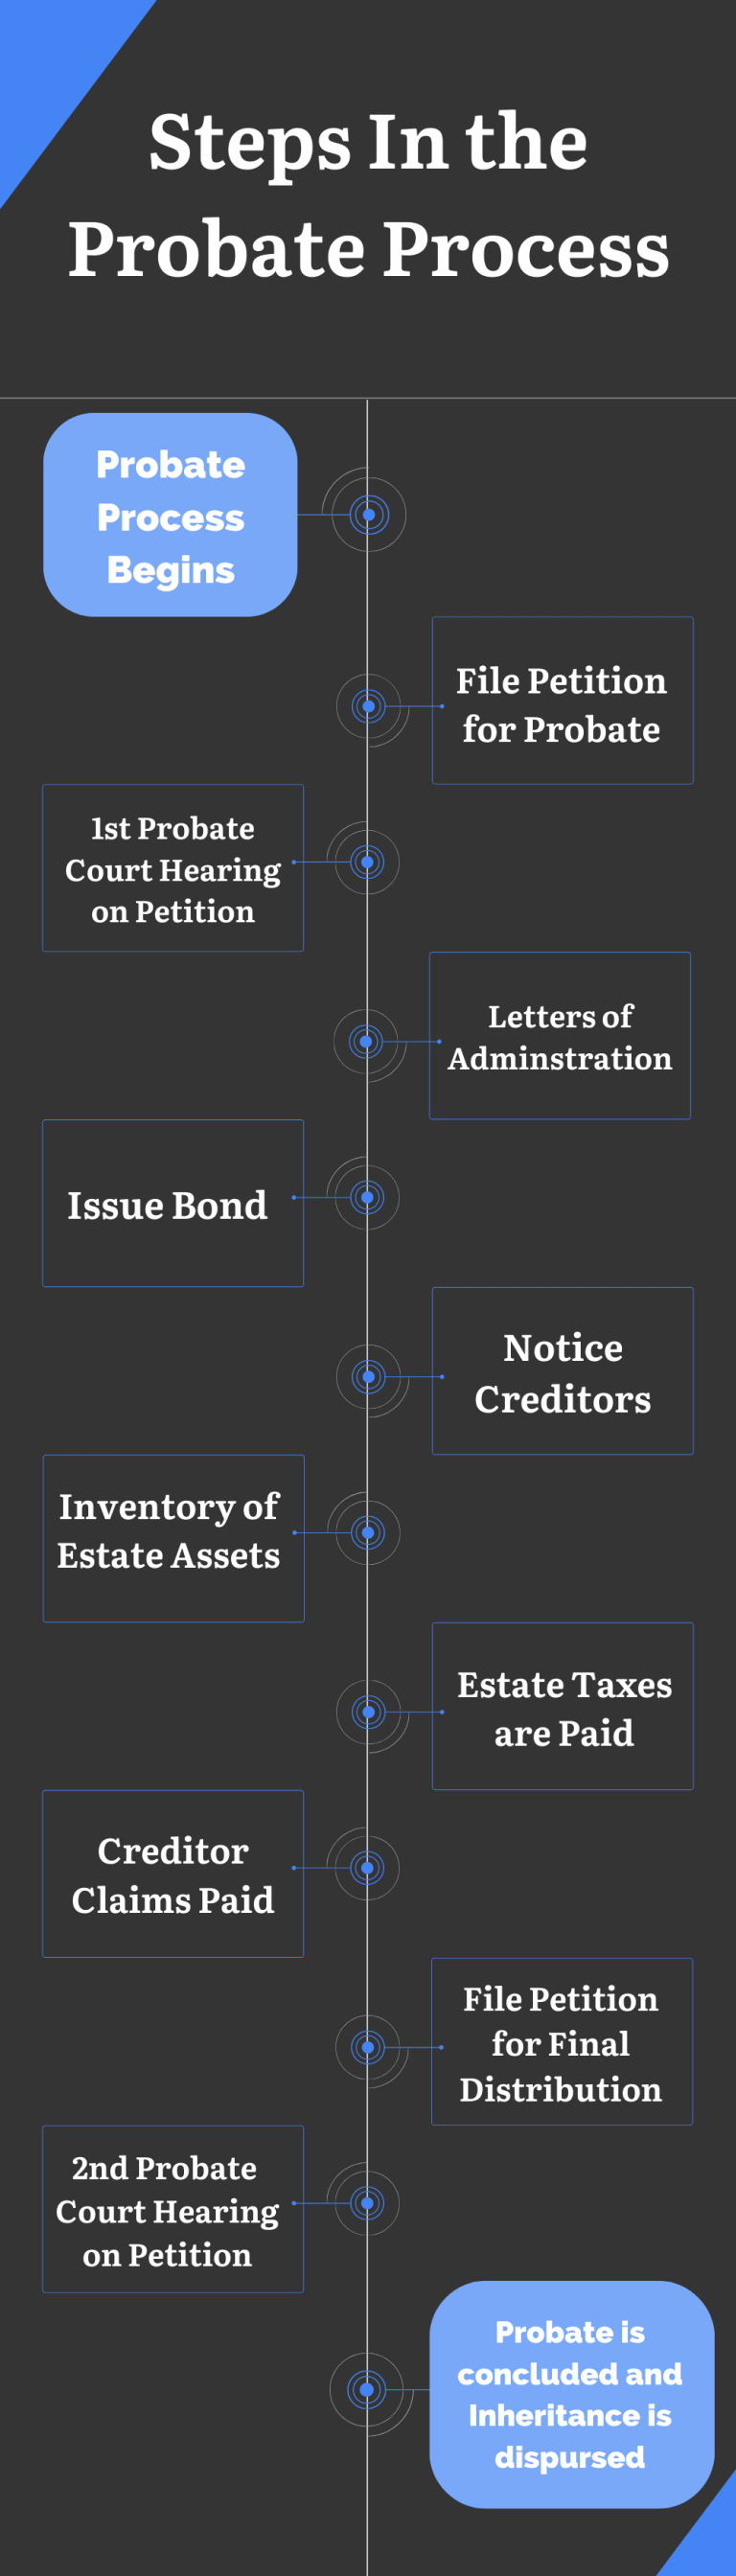 Steps In The Probate Process Infographic